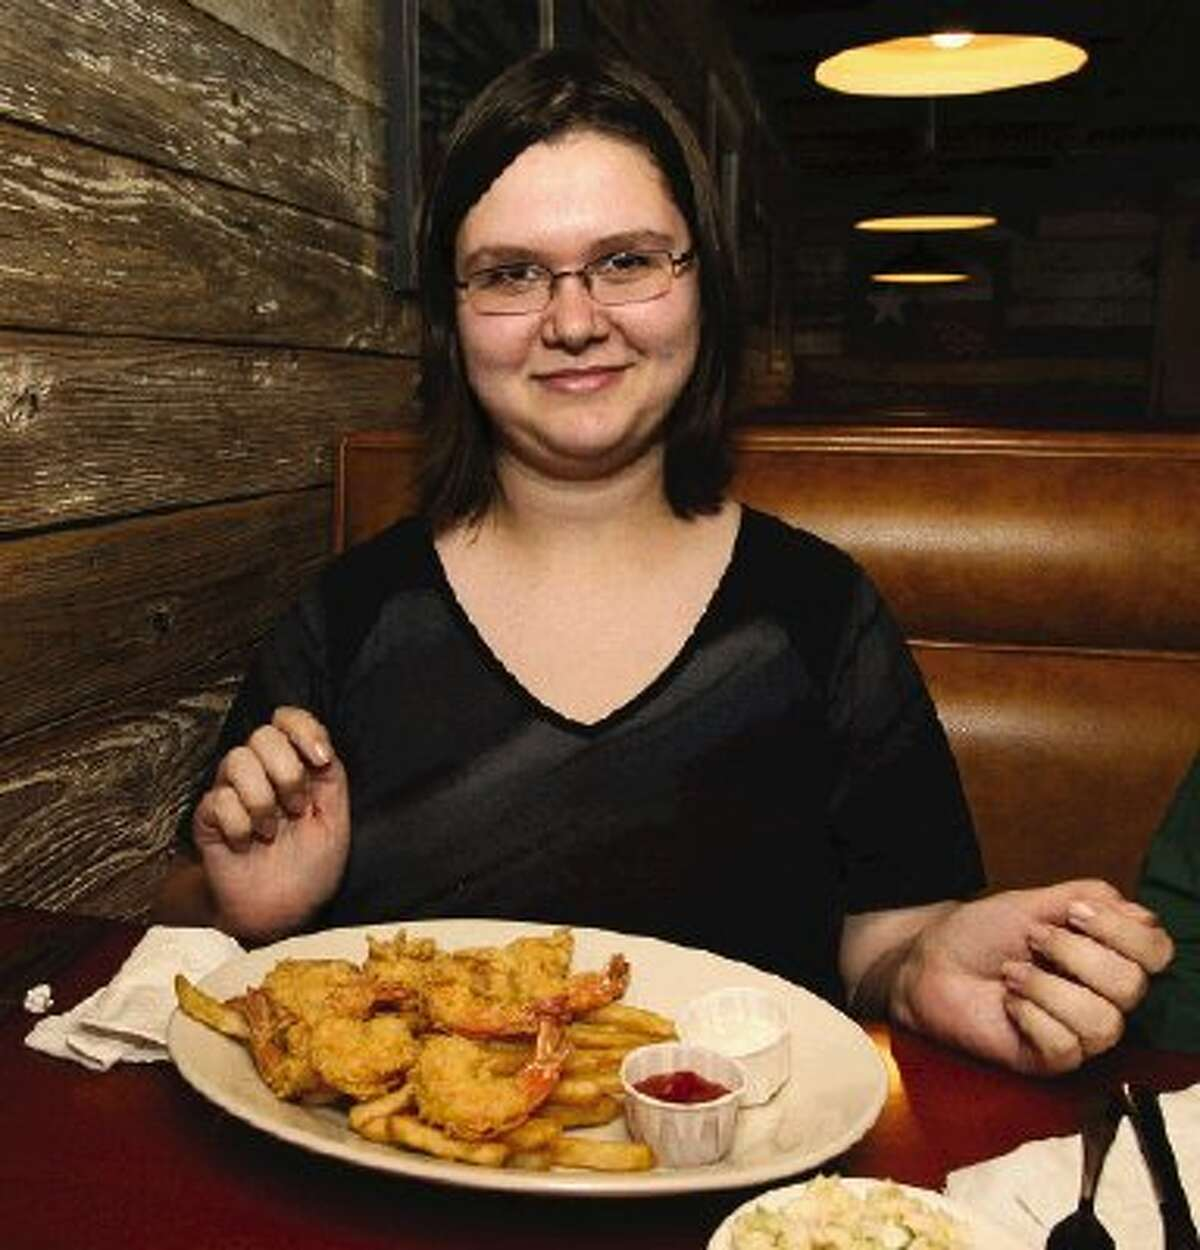 For her final meal as a summer intern at The Courier, Elizabeth Evans had a fried shrimp plate at Poppy's Seafood Grille in Willis.